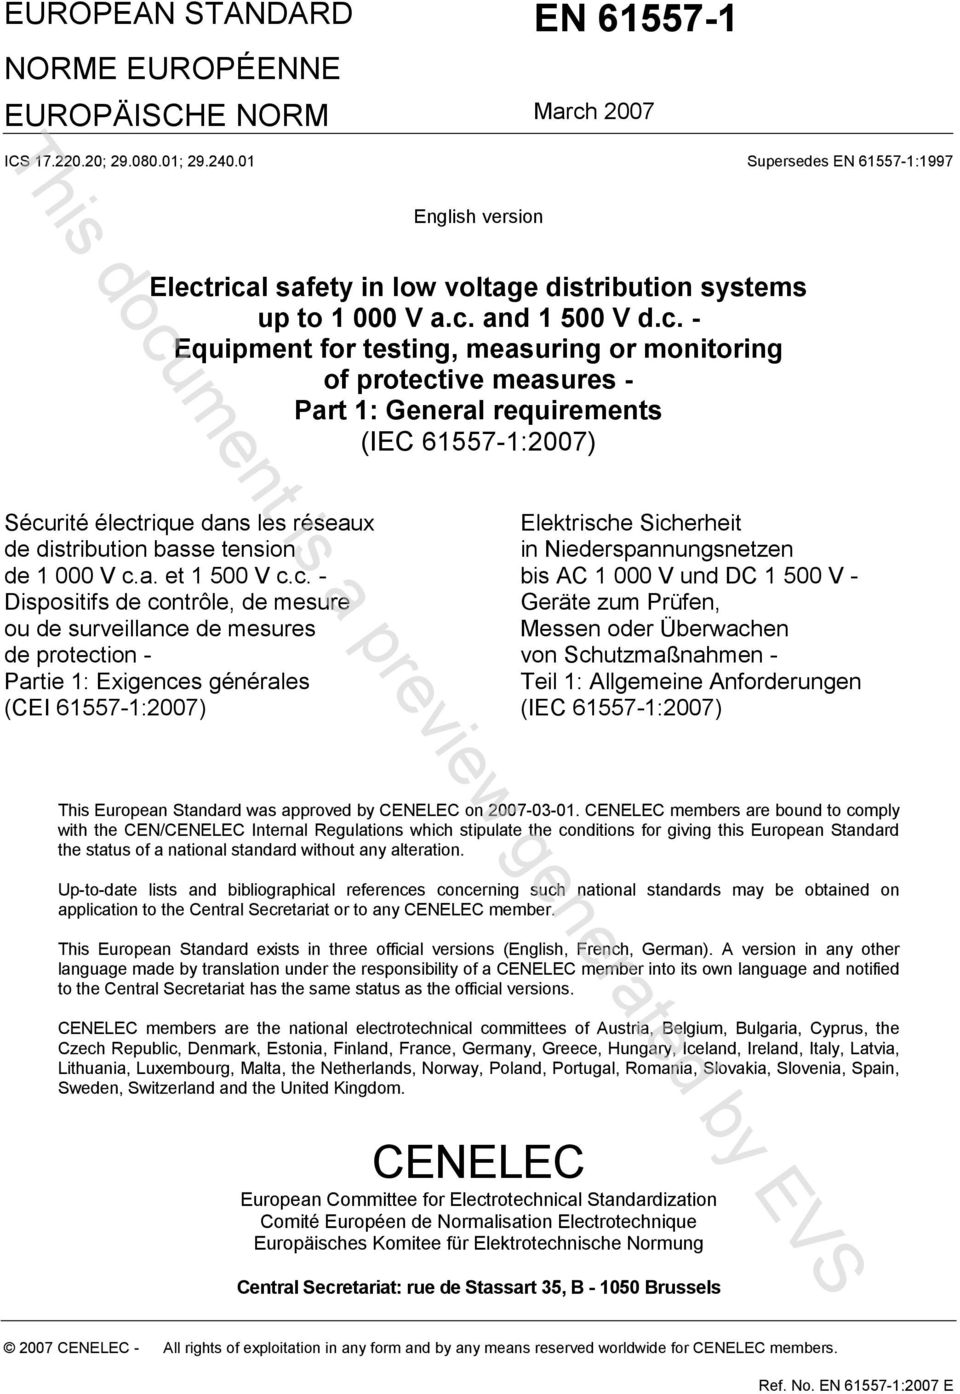 rical safety in low voltage distribution systems up to 1 000 V a.c. and 1 500 V d.c. - Equipment for testing, measuring or monitoring of protective measures - Part 1: General requirements (IEC